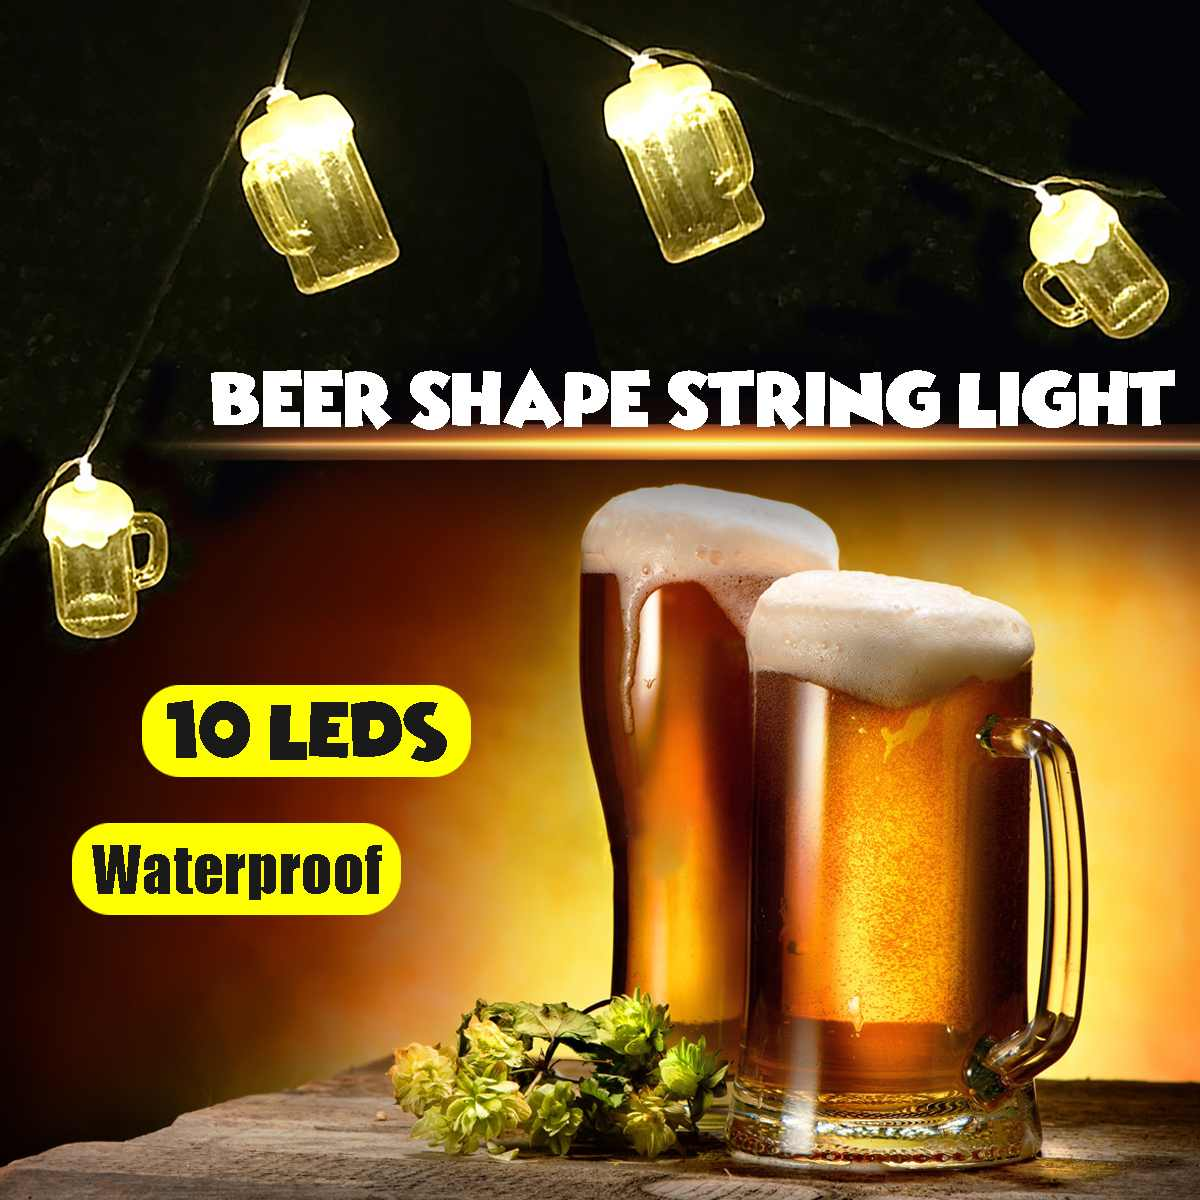 10 Led-lampen Bier-Festival String Licht Fee Hängen Lampe Party Kunststoff Decor Outdoor Hohe Temperatur Beständig Wasserdicht image